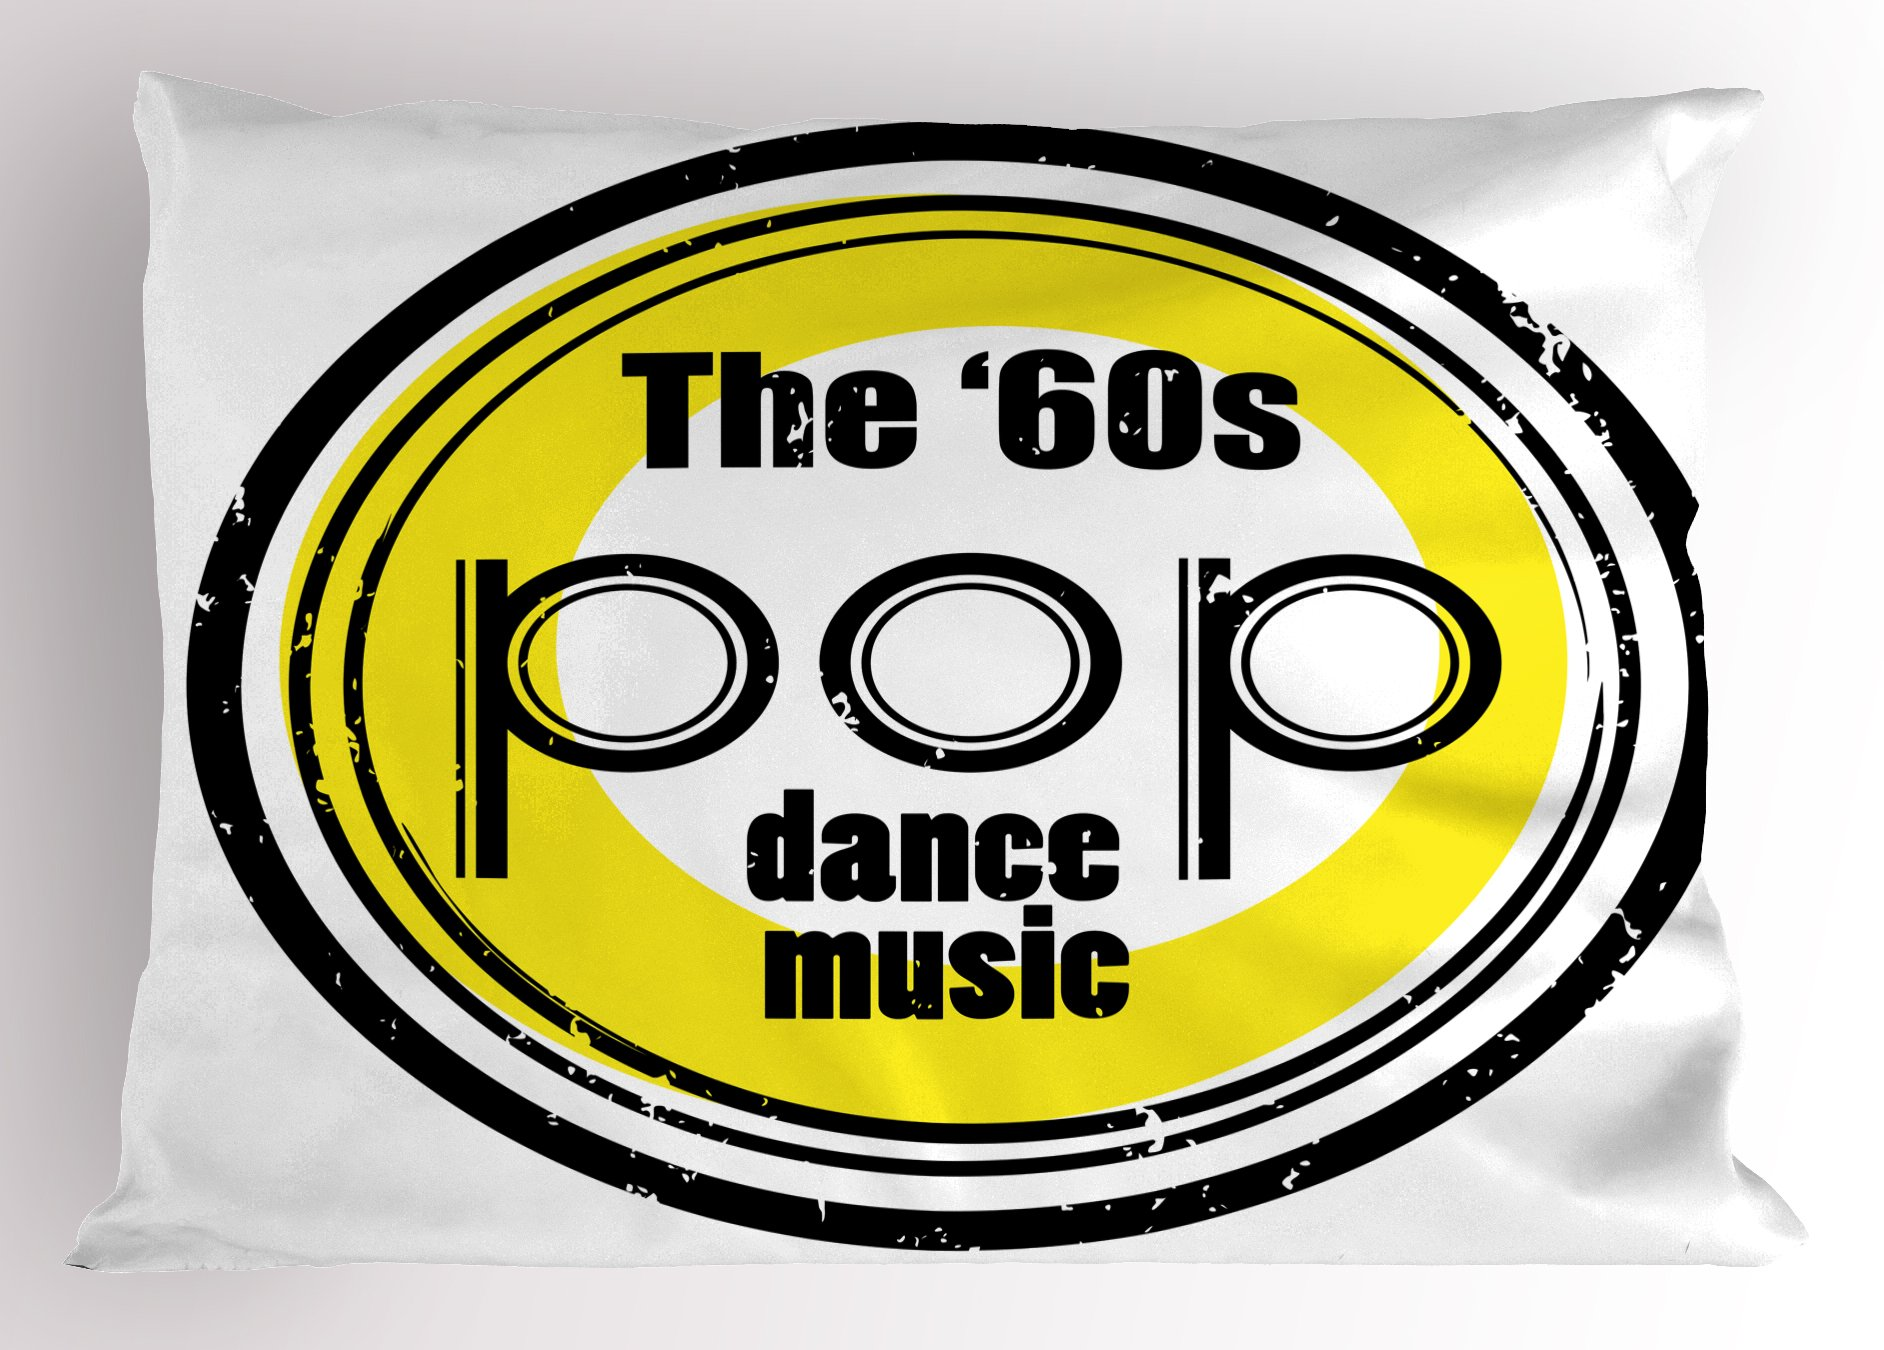 Ambesonne 1960s Pillow Sham, Party Music Night Club Bar Band Pop Dance Festival Classic Good Old Days Art, Decorative Standard Size Printed Pillowcase, 26 X 20 inches, Black White Yellow by Ambesonne (Image #1)